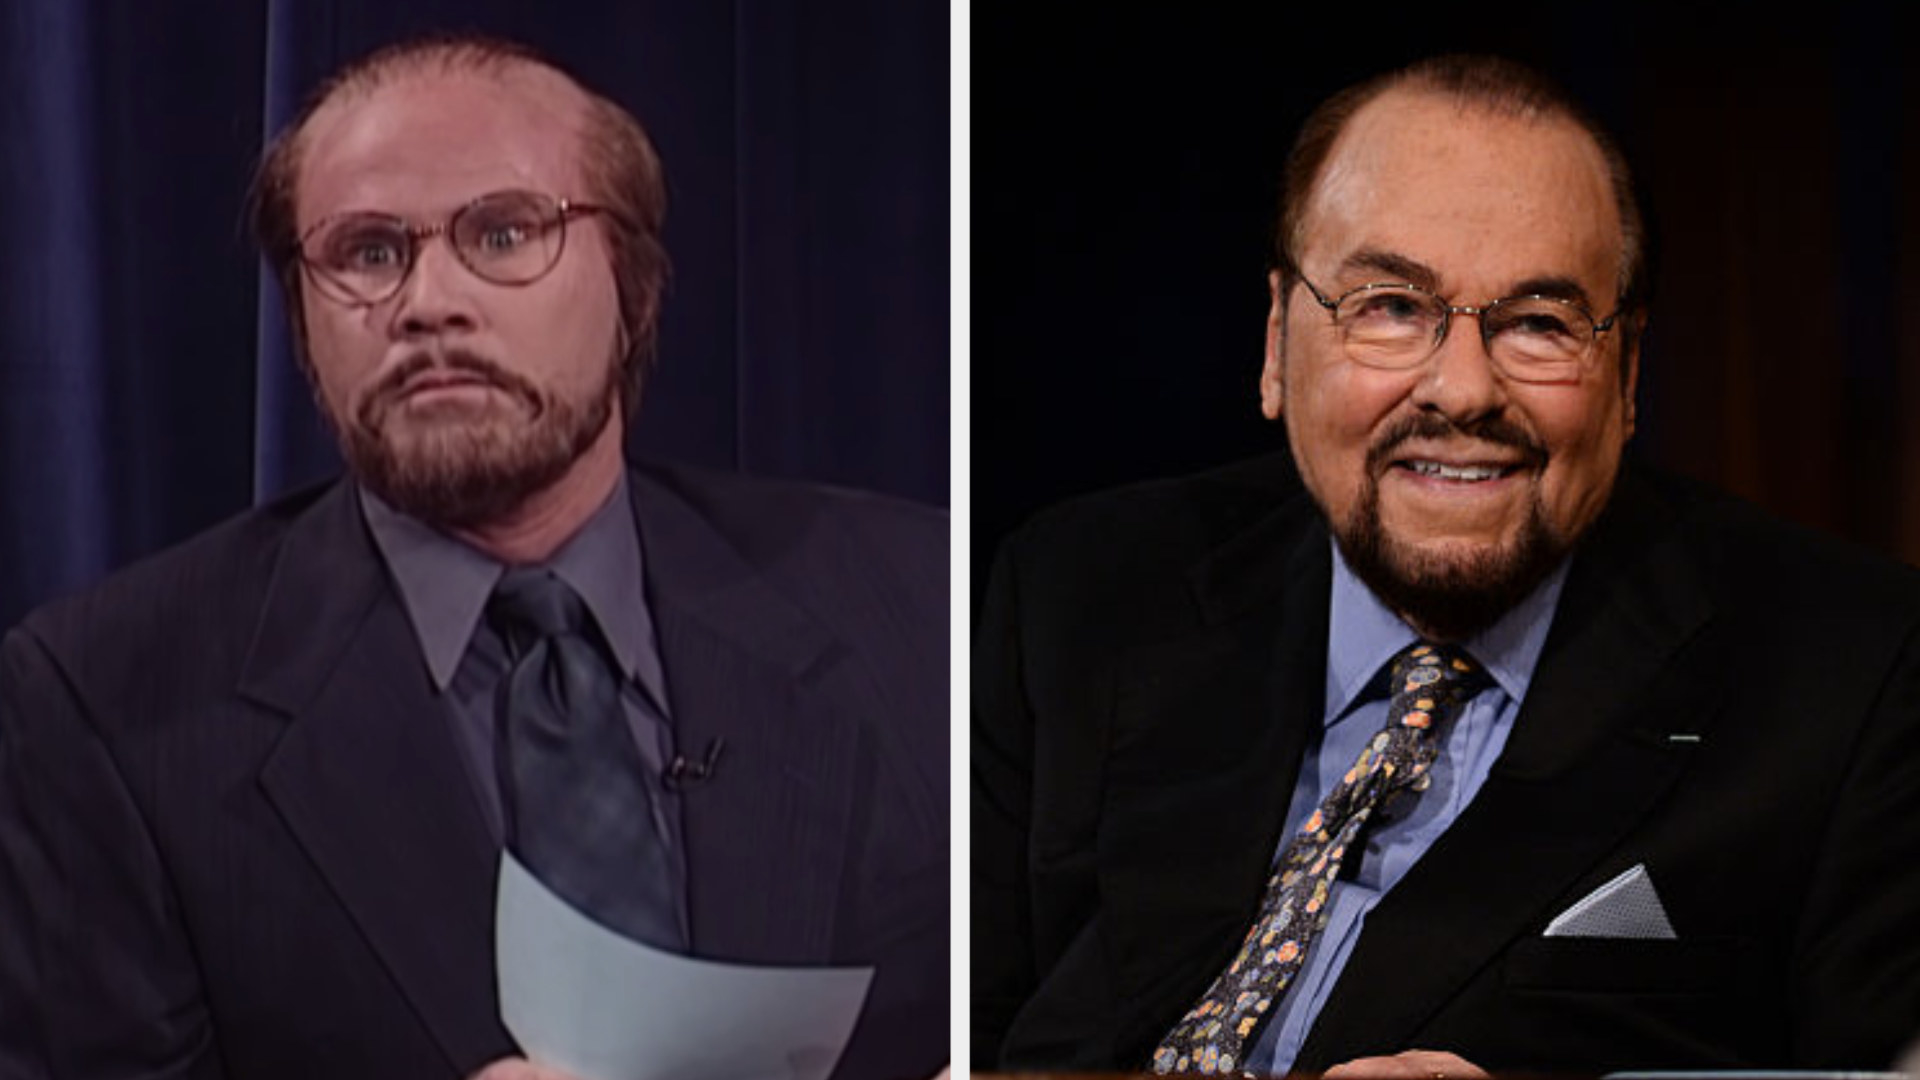 Will Ferrell with a receding hairline and glasses side by side with James Lipton